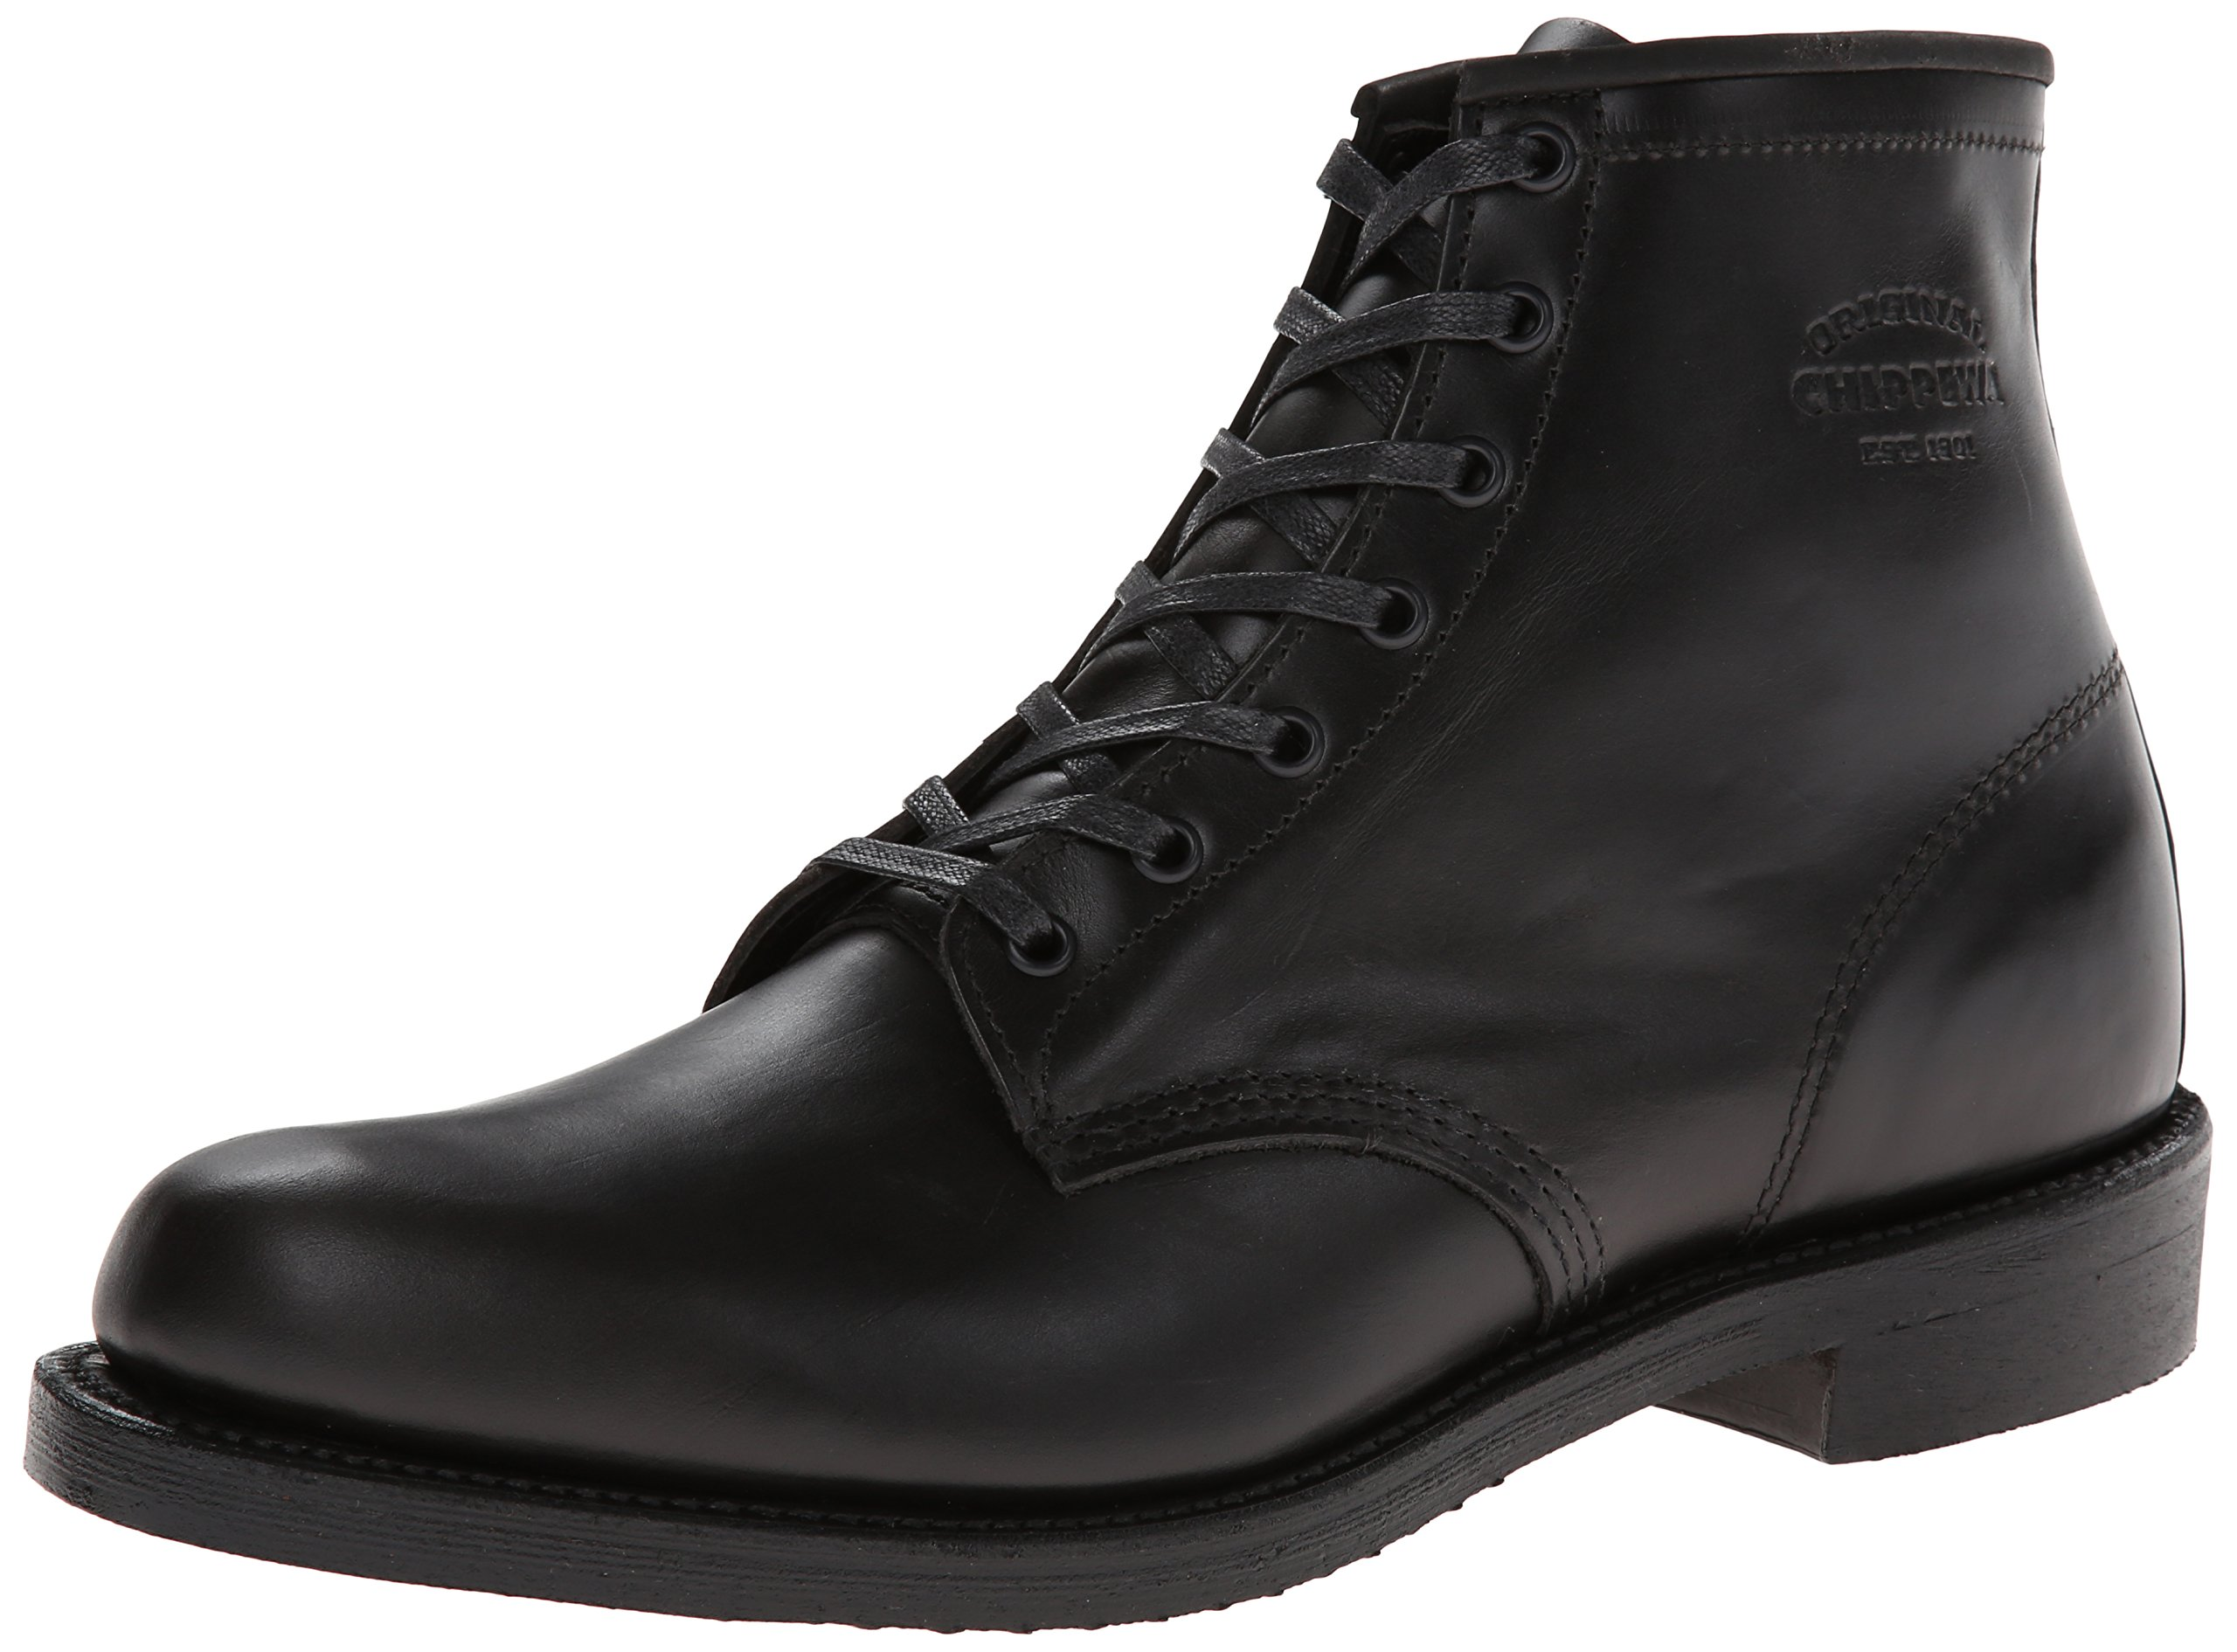 Original Chippewa Collection Men's 1901M82 6 Inch Service Utility Boot, Trooper Black, 9.5 D US